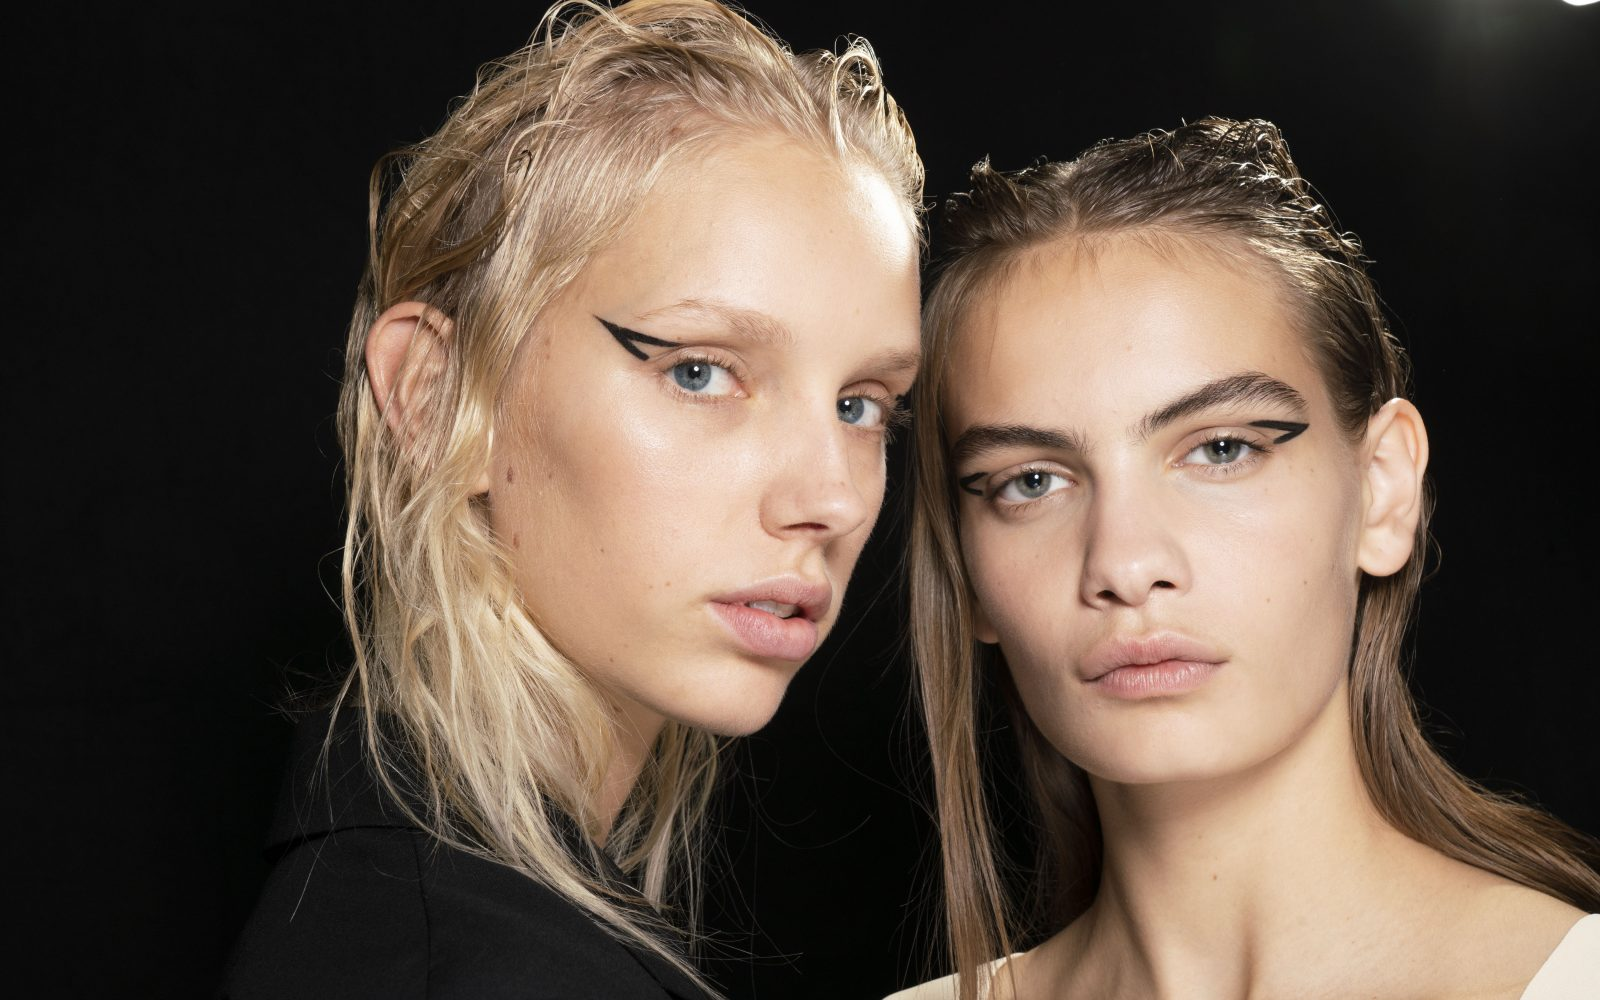 SS19 beauty trends